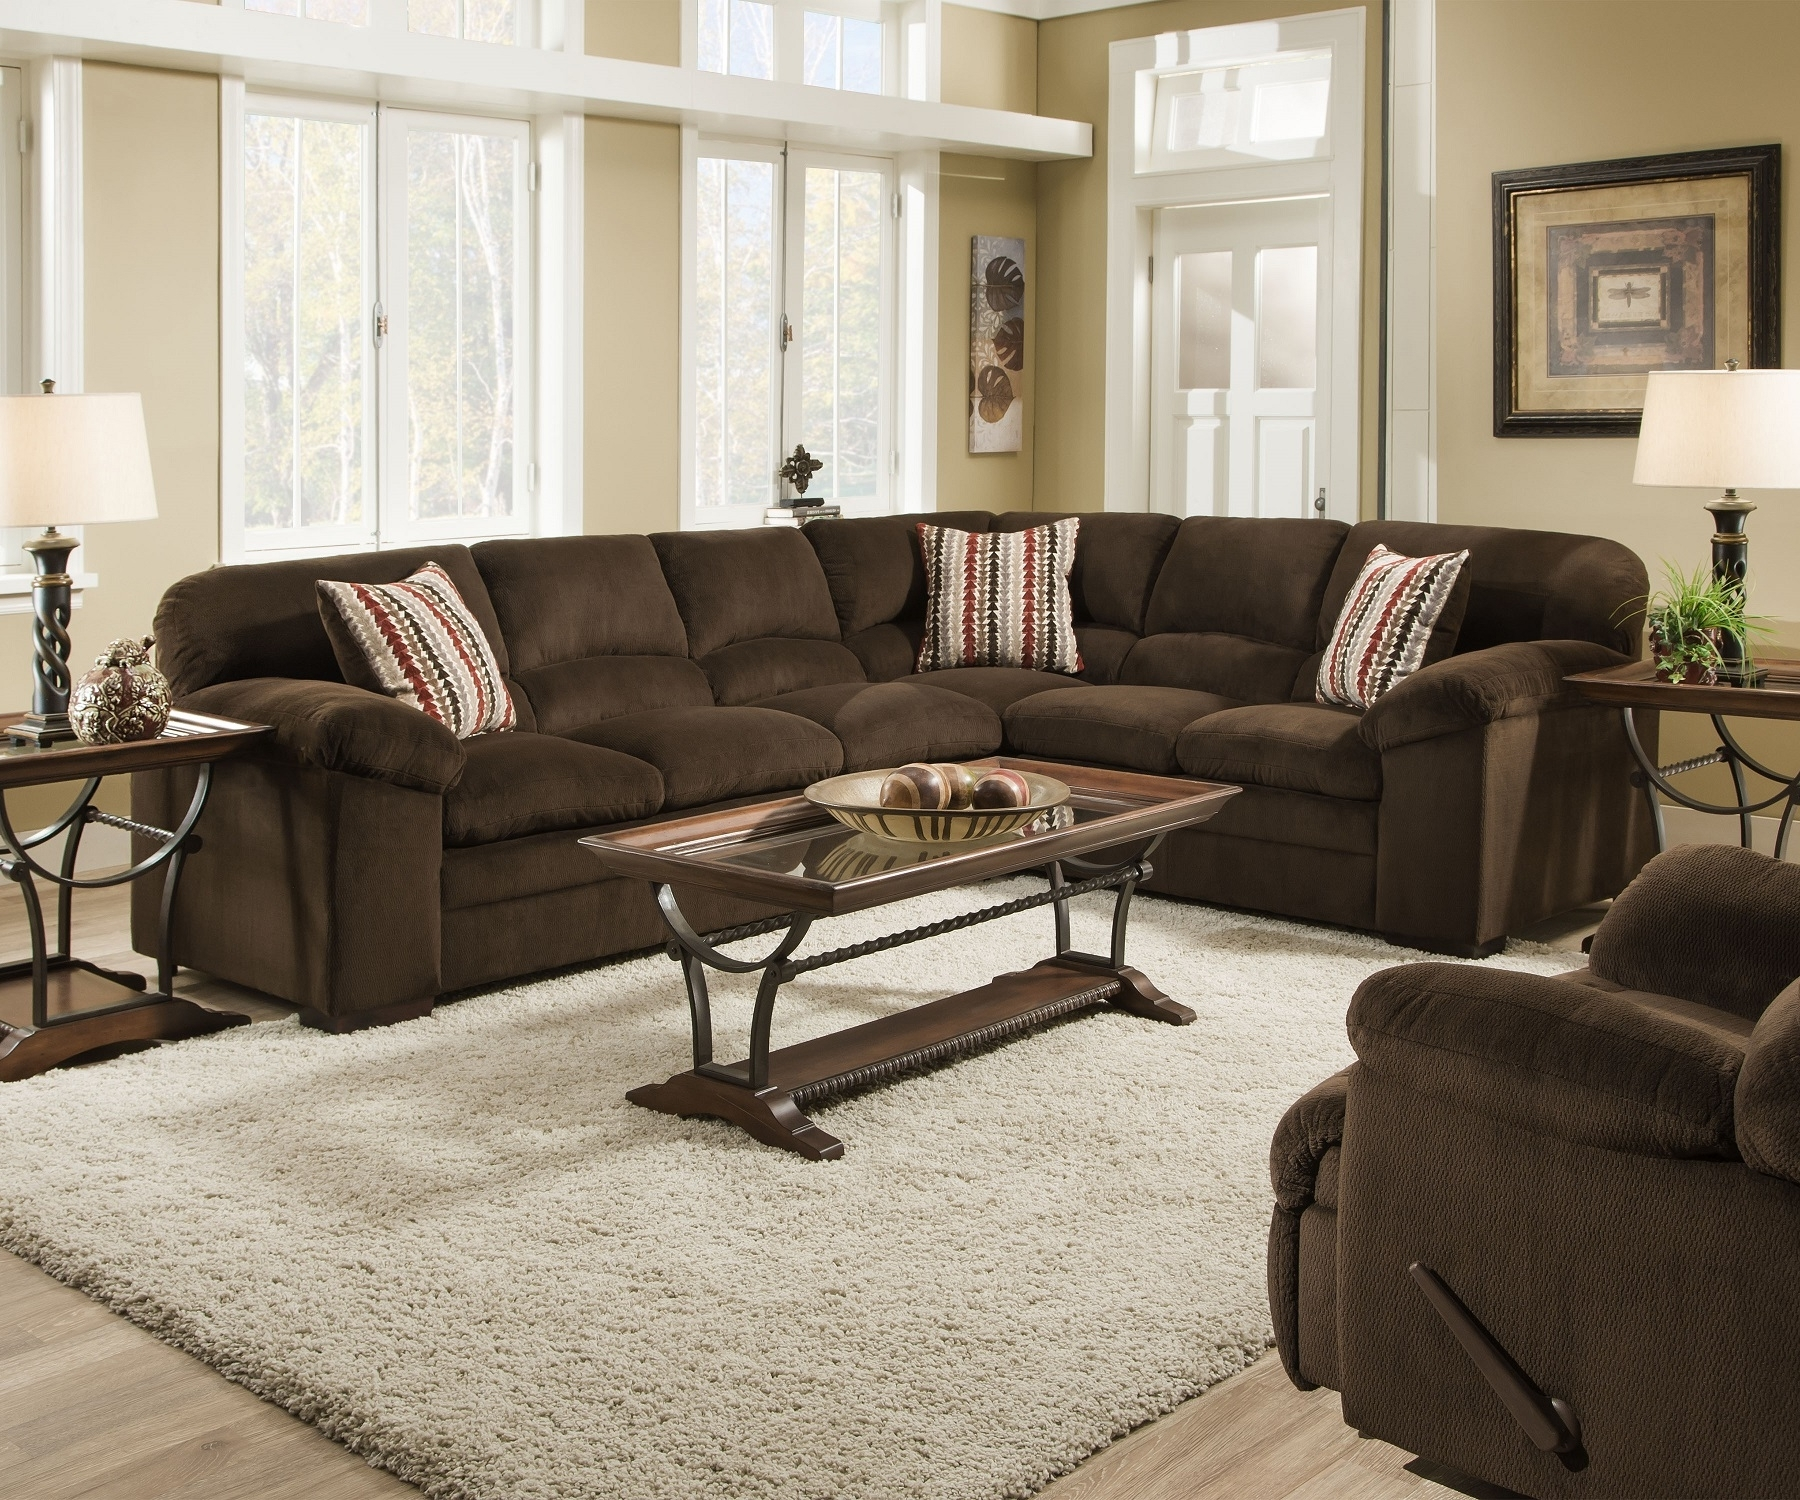 Well Known Simmons Dover 8043 Chocolate Ultra Plush Soft Seating Made In The Usa With Regard To Chocolate Sectional Sofas (View 19 of 20)